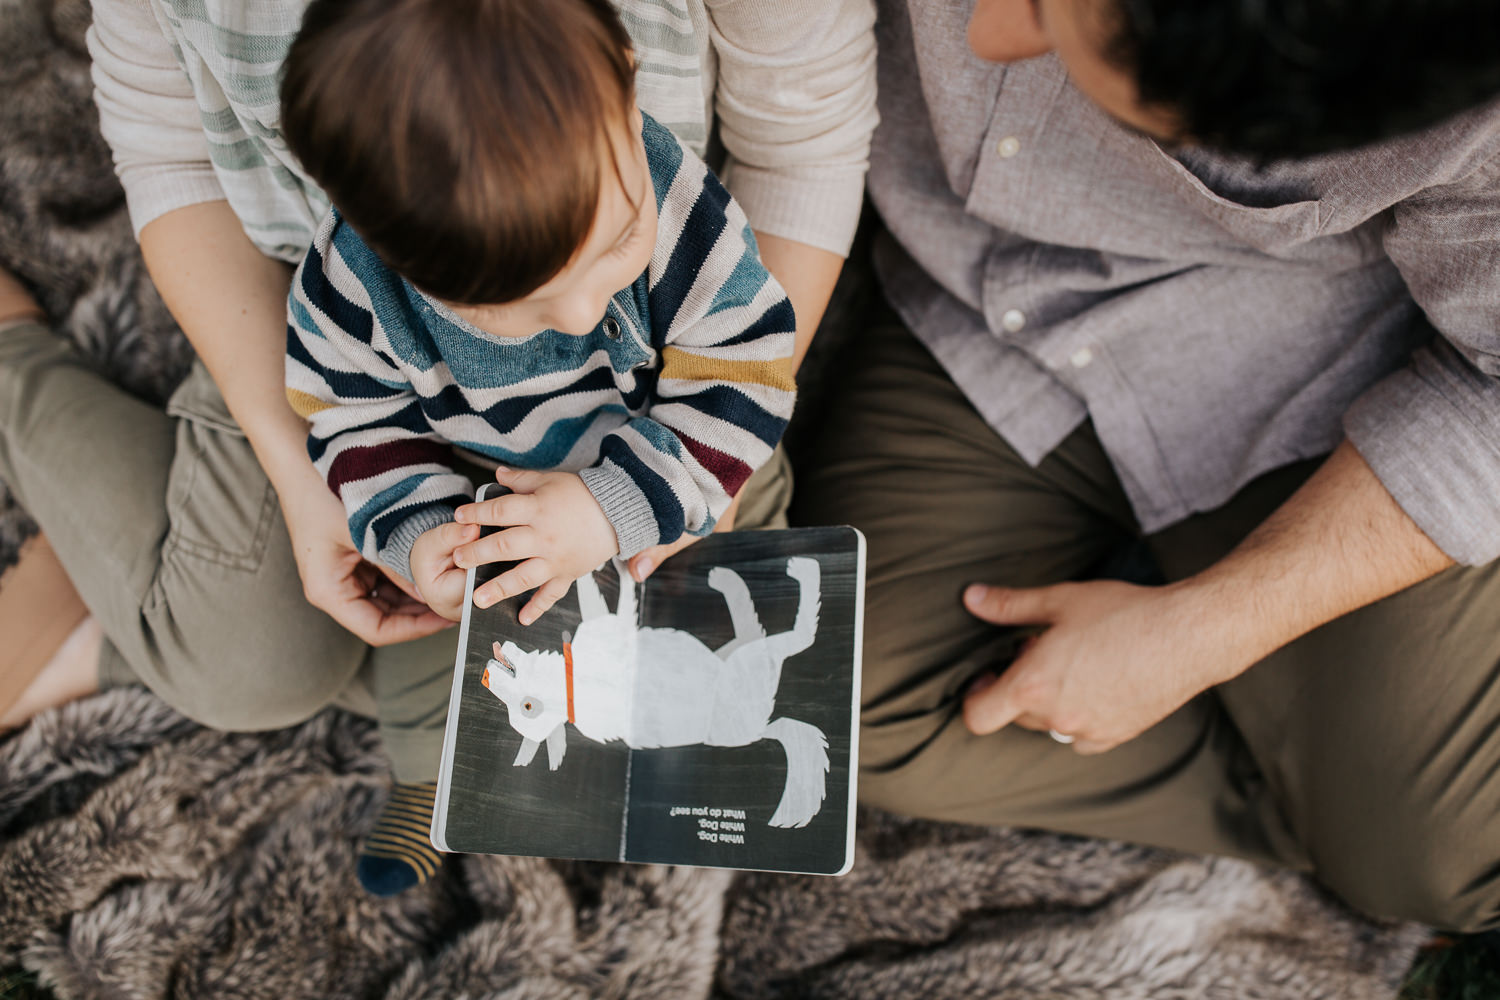 family of 3 sitting on fur blanket under willow tree at sunset, 1 year old baby boy sitting on mom's lap reading story, dad next to them - York Region Lifestyle Photography